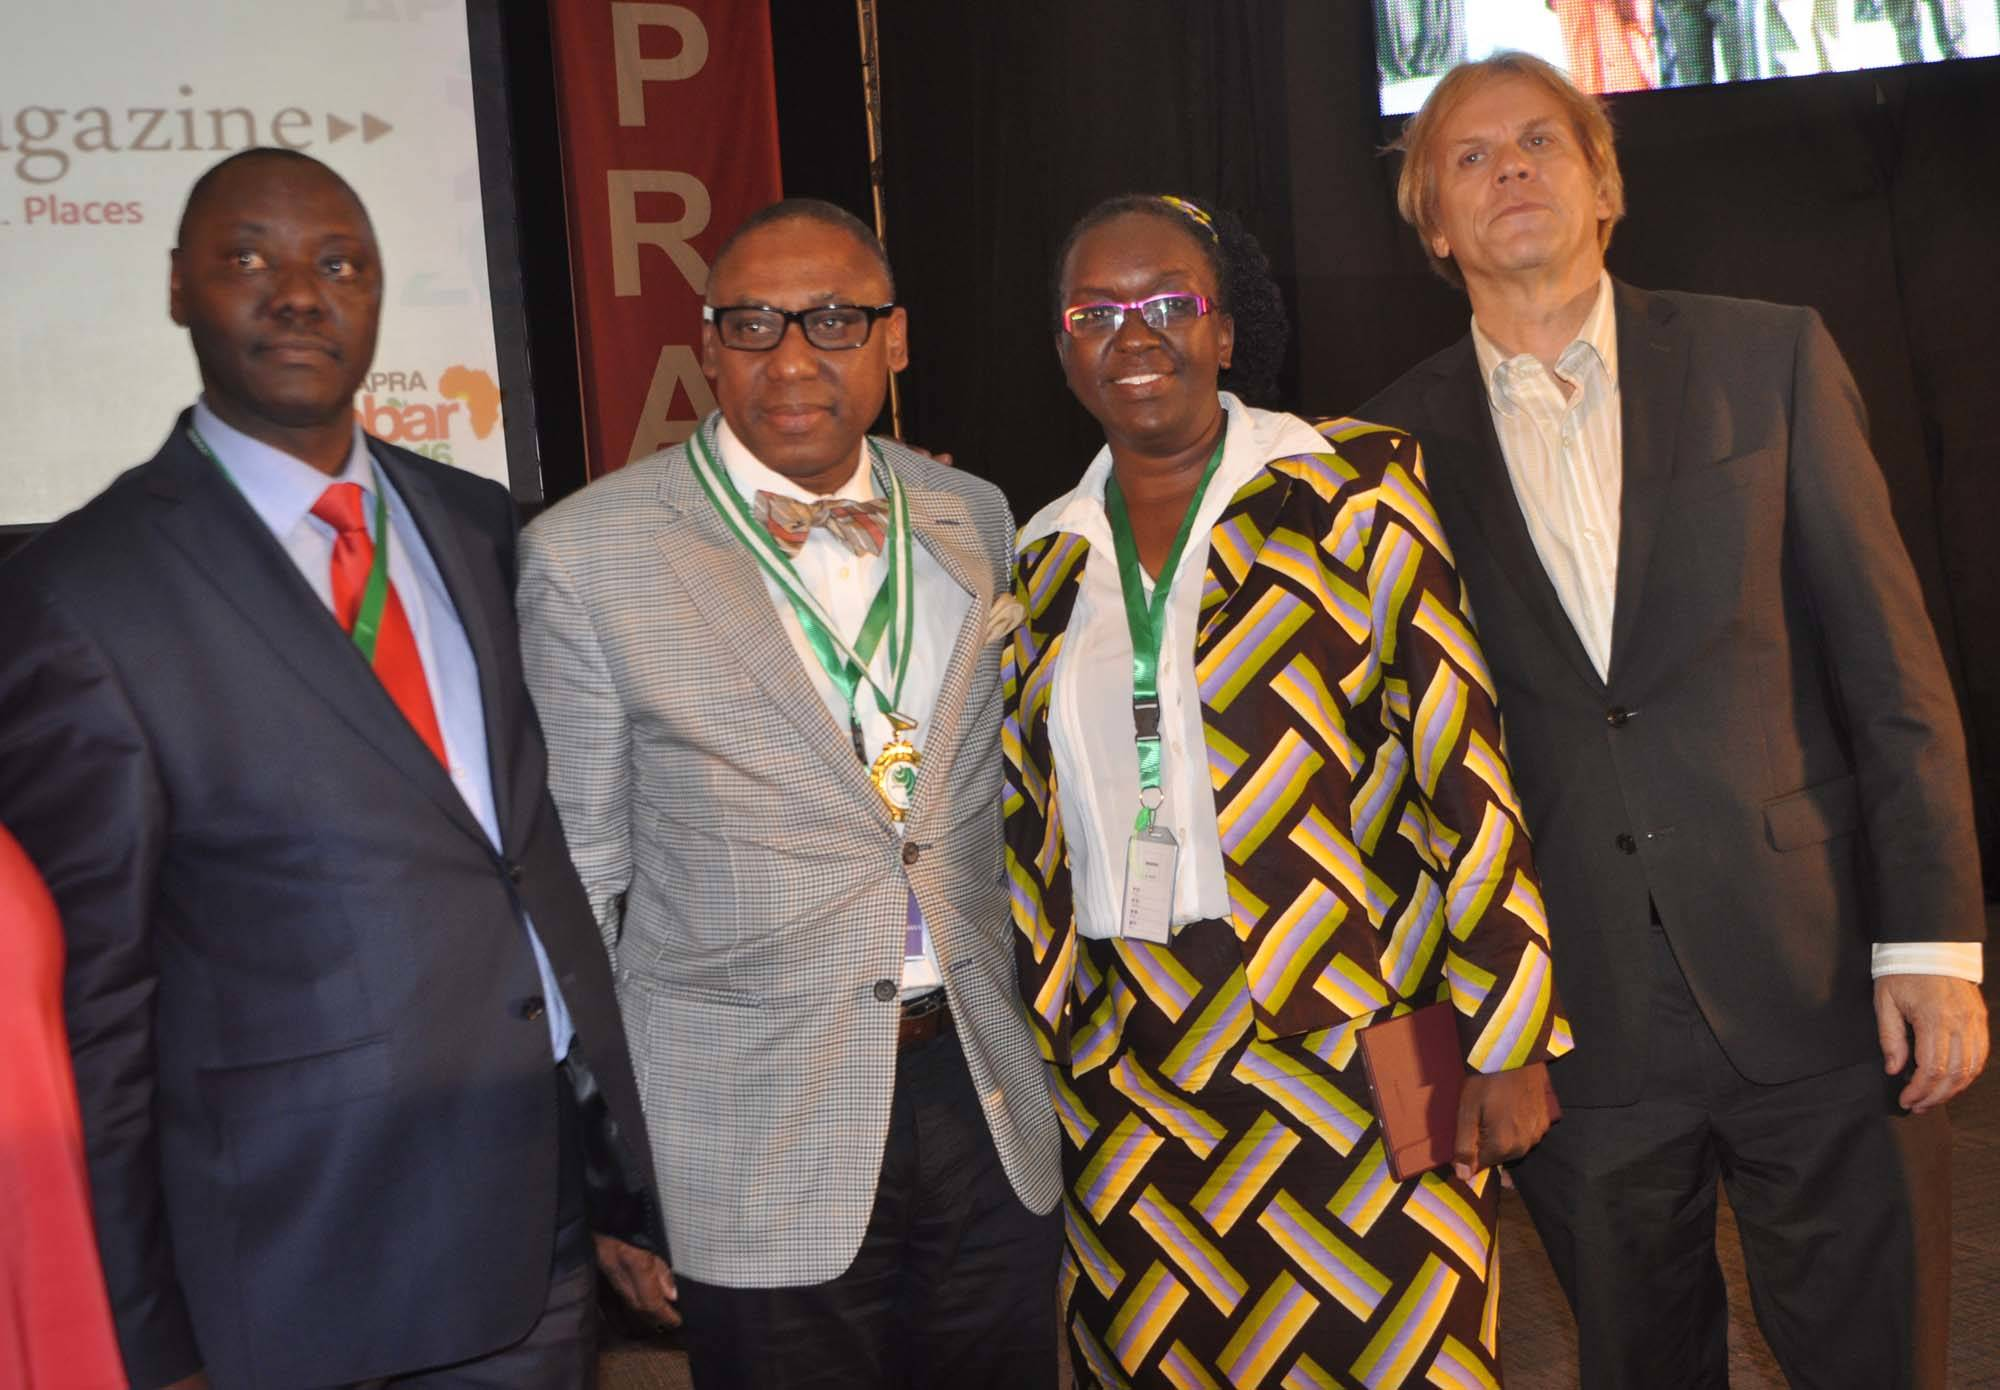 From left: Peter Mutie, outgoing President of the African Public Relations Association (APRA); Yomi Badejo-Okusanya, new APRA President; Ms Jane Gitau, new APRA Secretary General who is also President,Public Relations Societyof Kenya; andBart de Vries, President of the International Public relations Association (IPRA) after the inauguration of the new APRA Executive at the just concluded APRA Calabar 2016 Conference